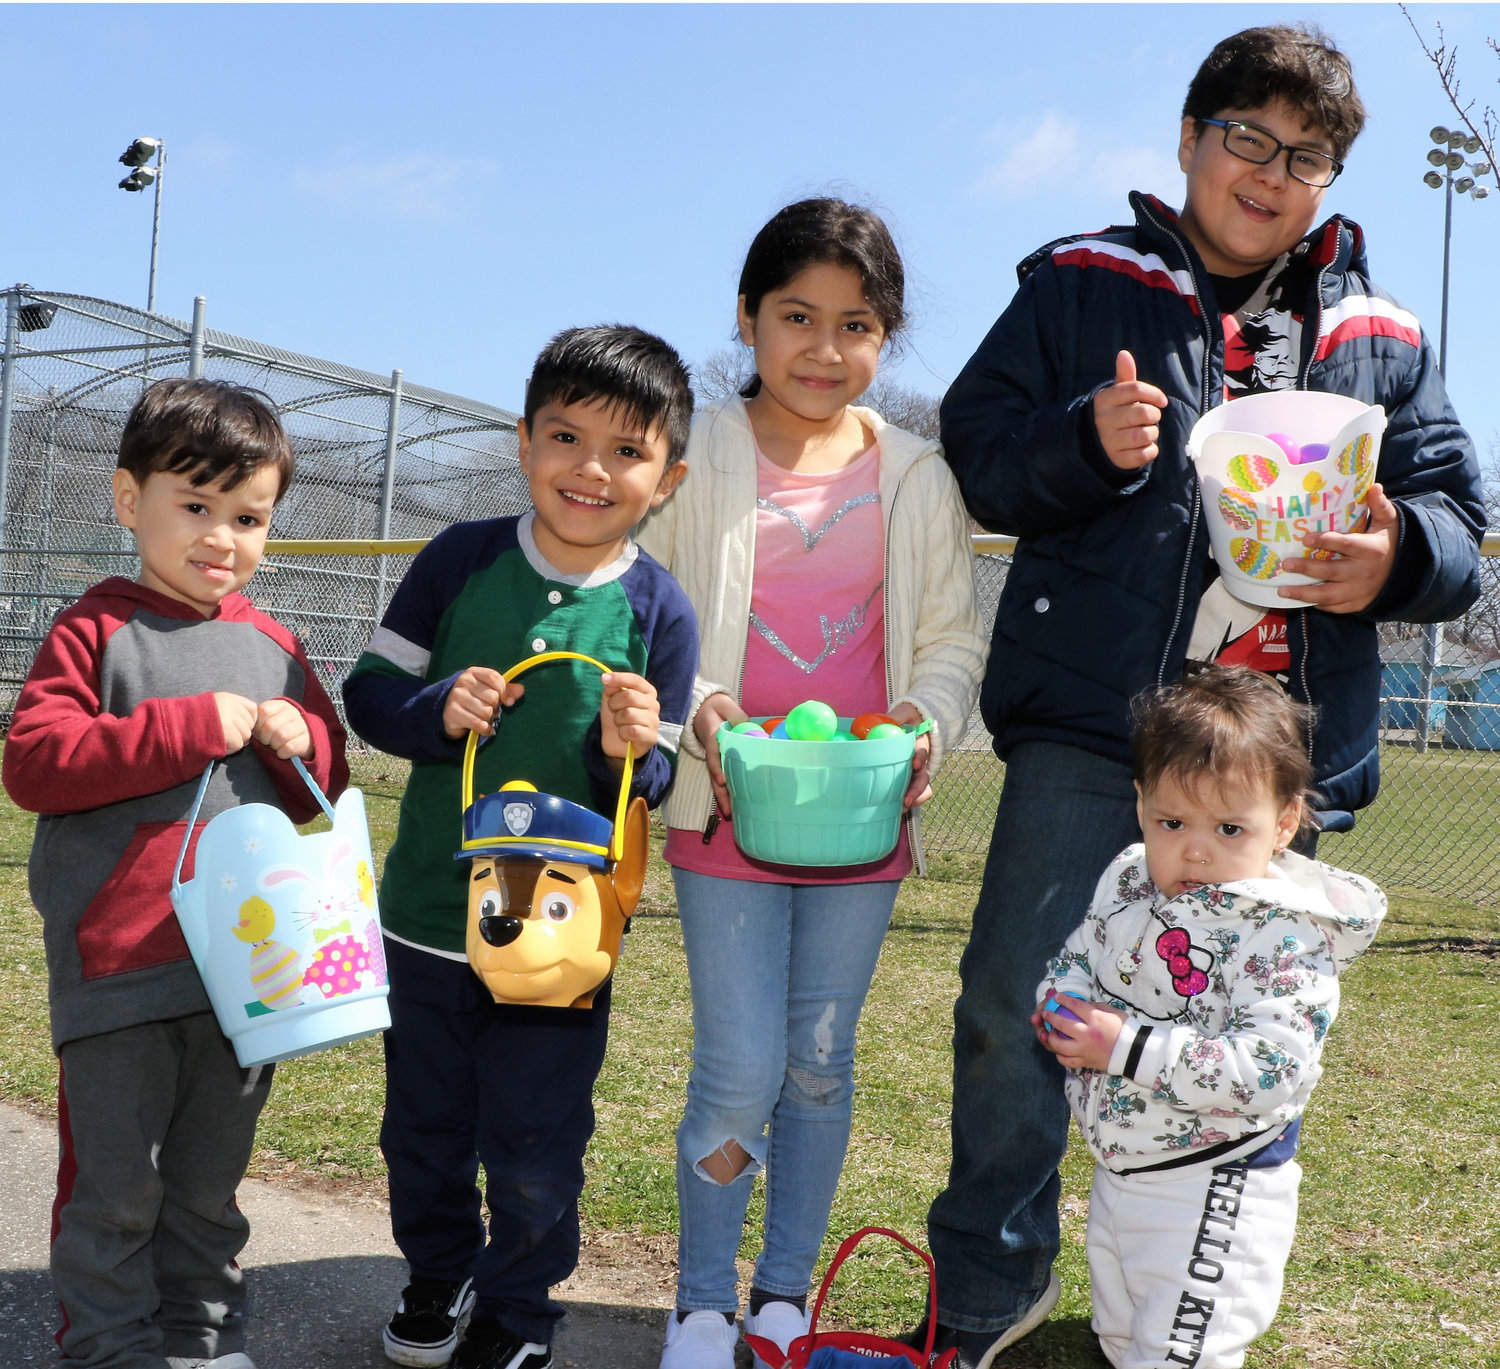 Jacob Amaya, Andrew Chombo, Abigail Loetorre, Diego Amaya and Alexandra Amaya had a great time filling their baskets with Easter treats.